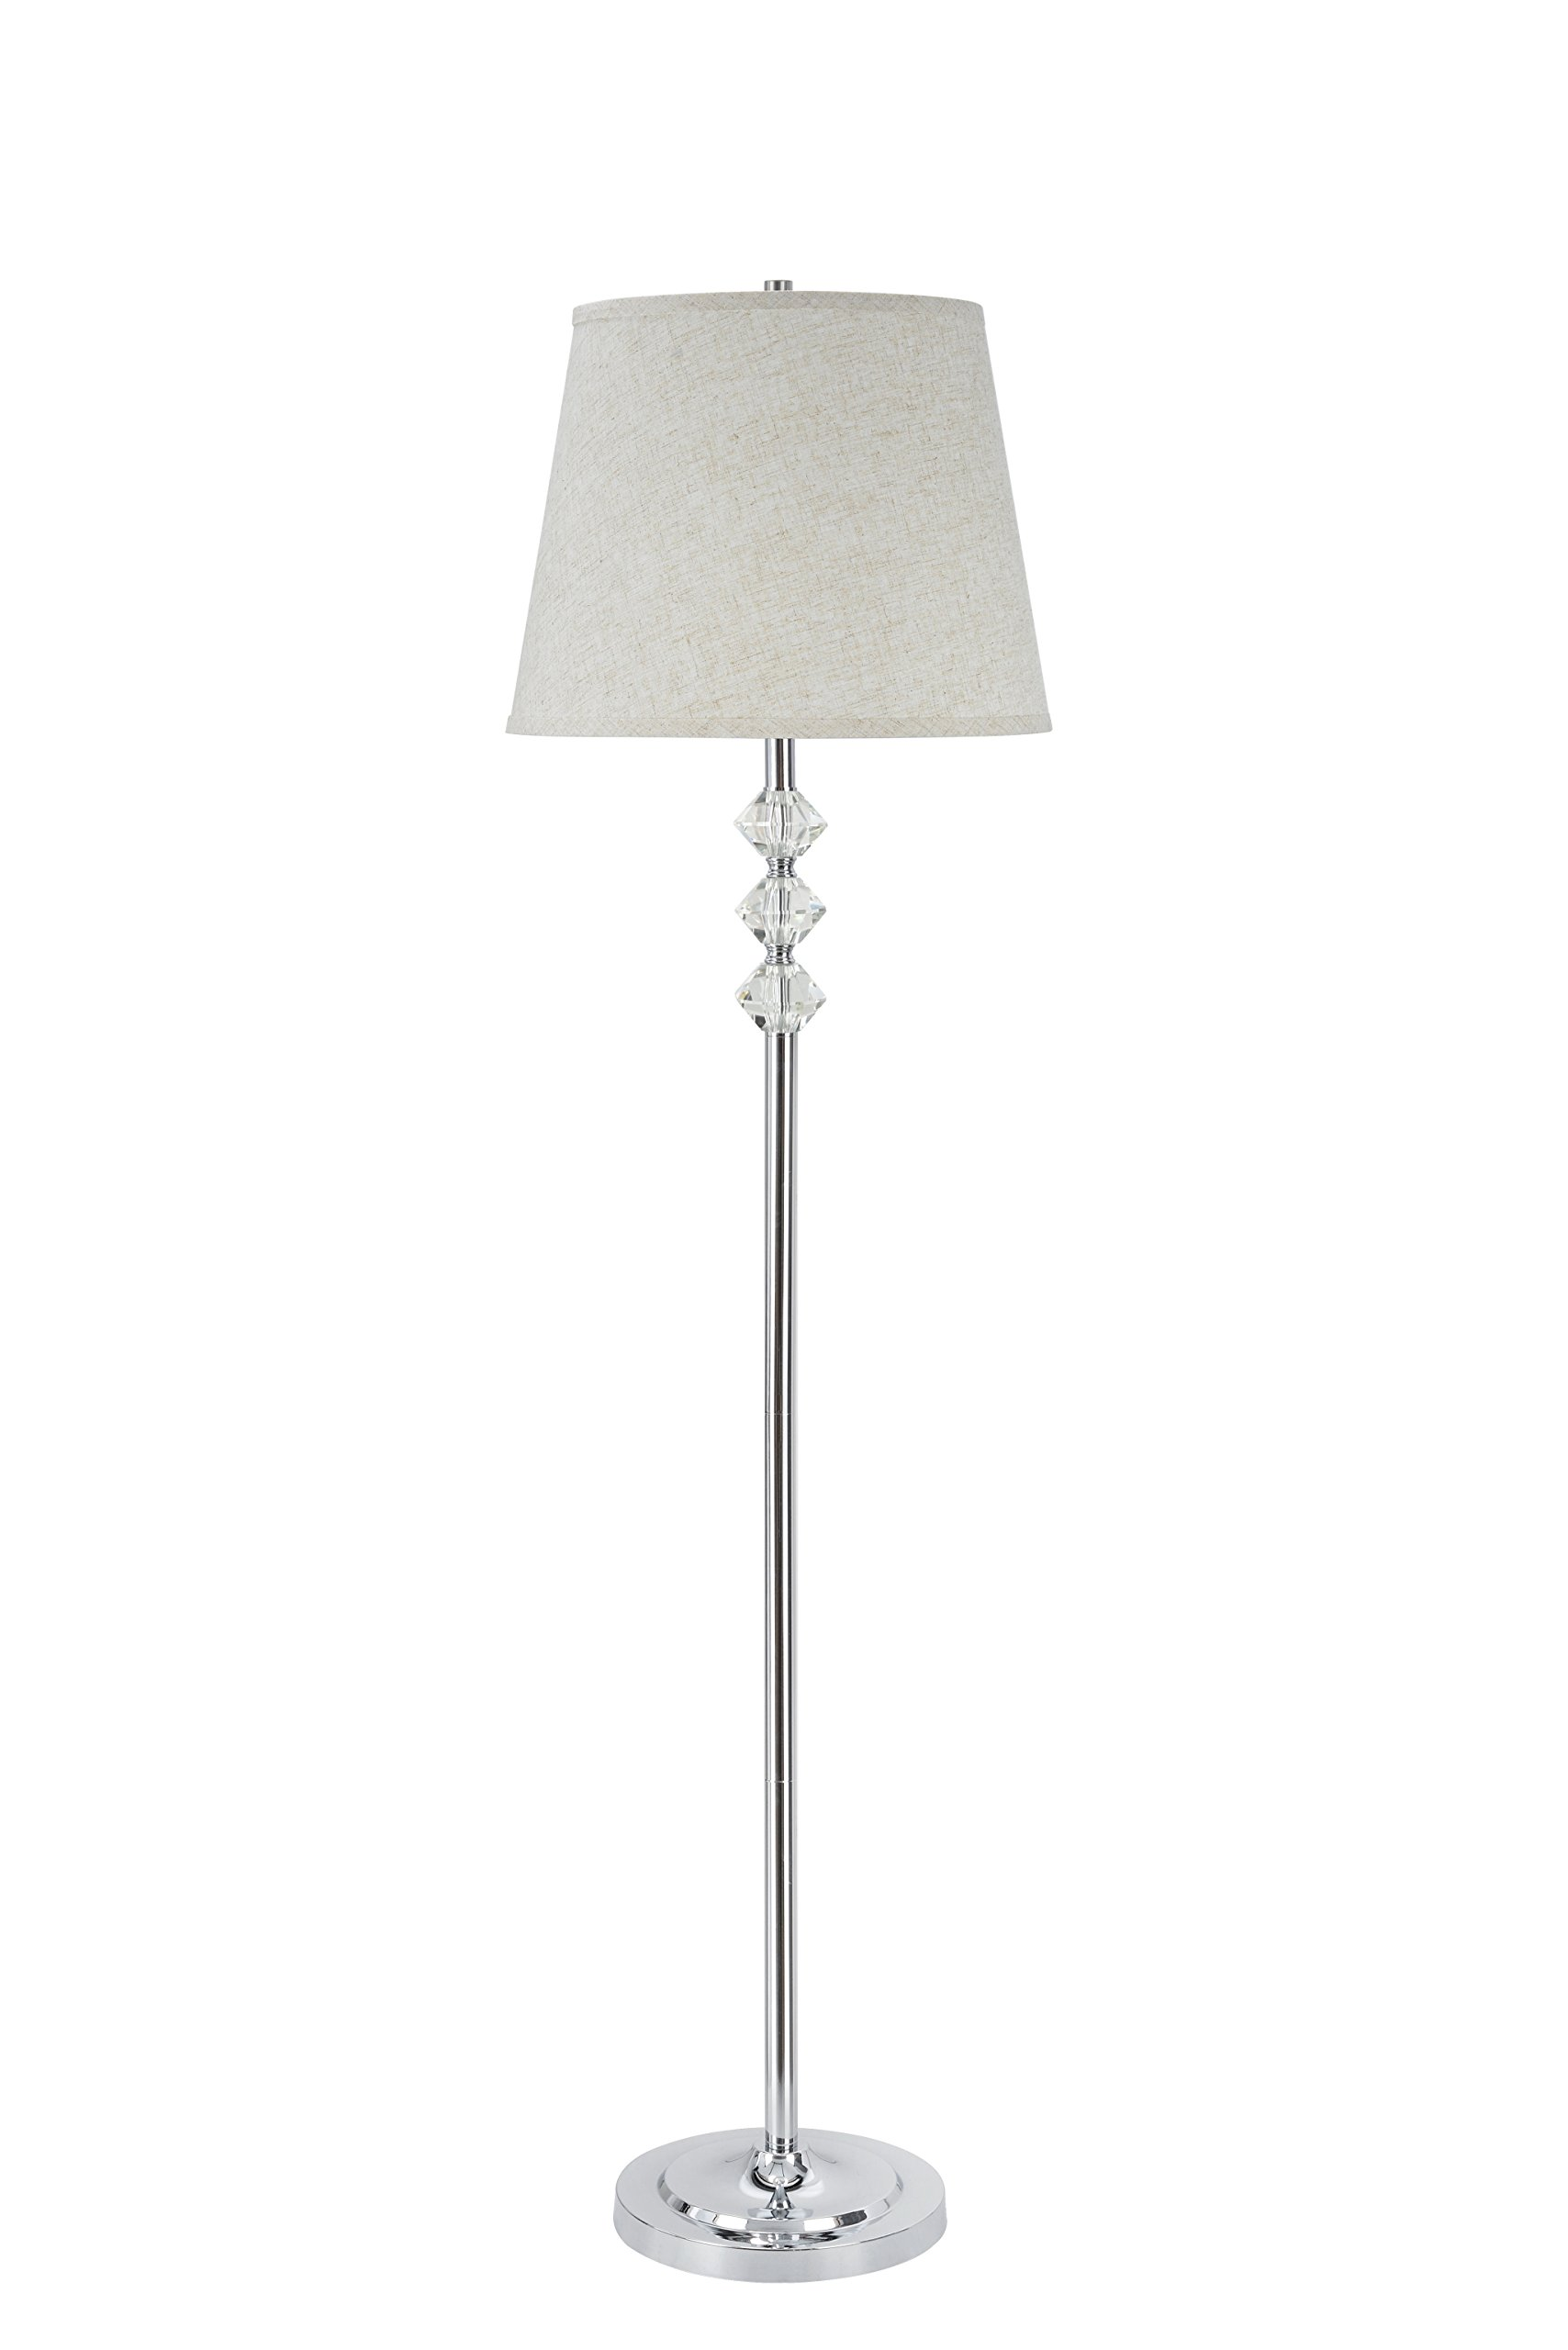 Aspen Creative 45004, 1-Light Crystal Accented Floor Lamp, Transitional Design in Chrome, 60'' High